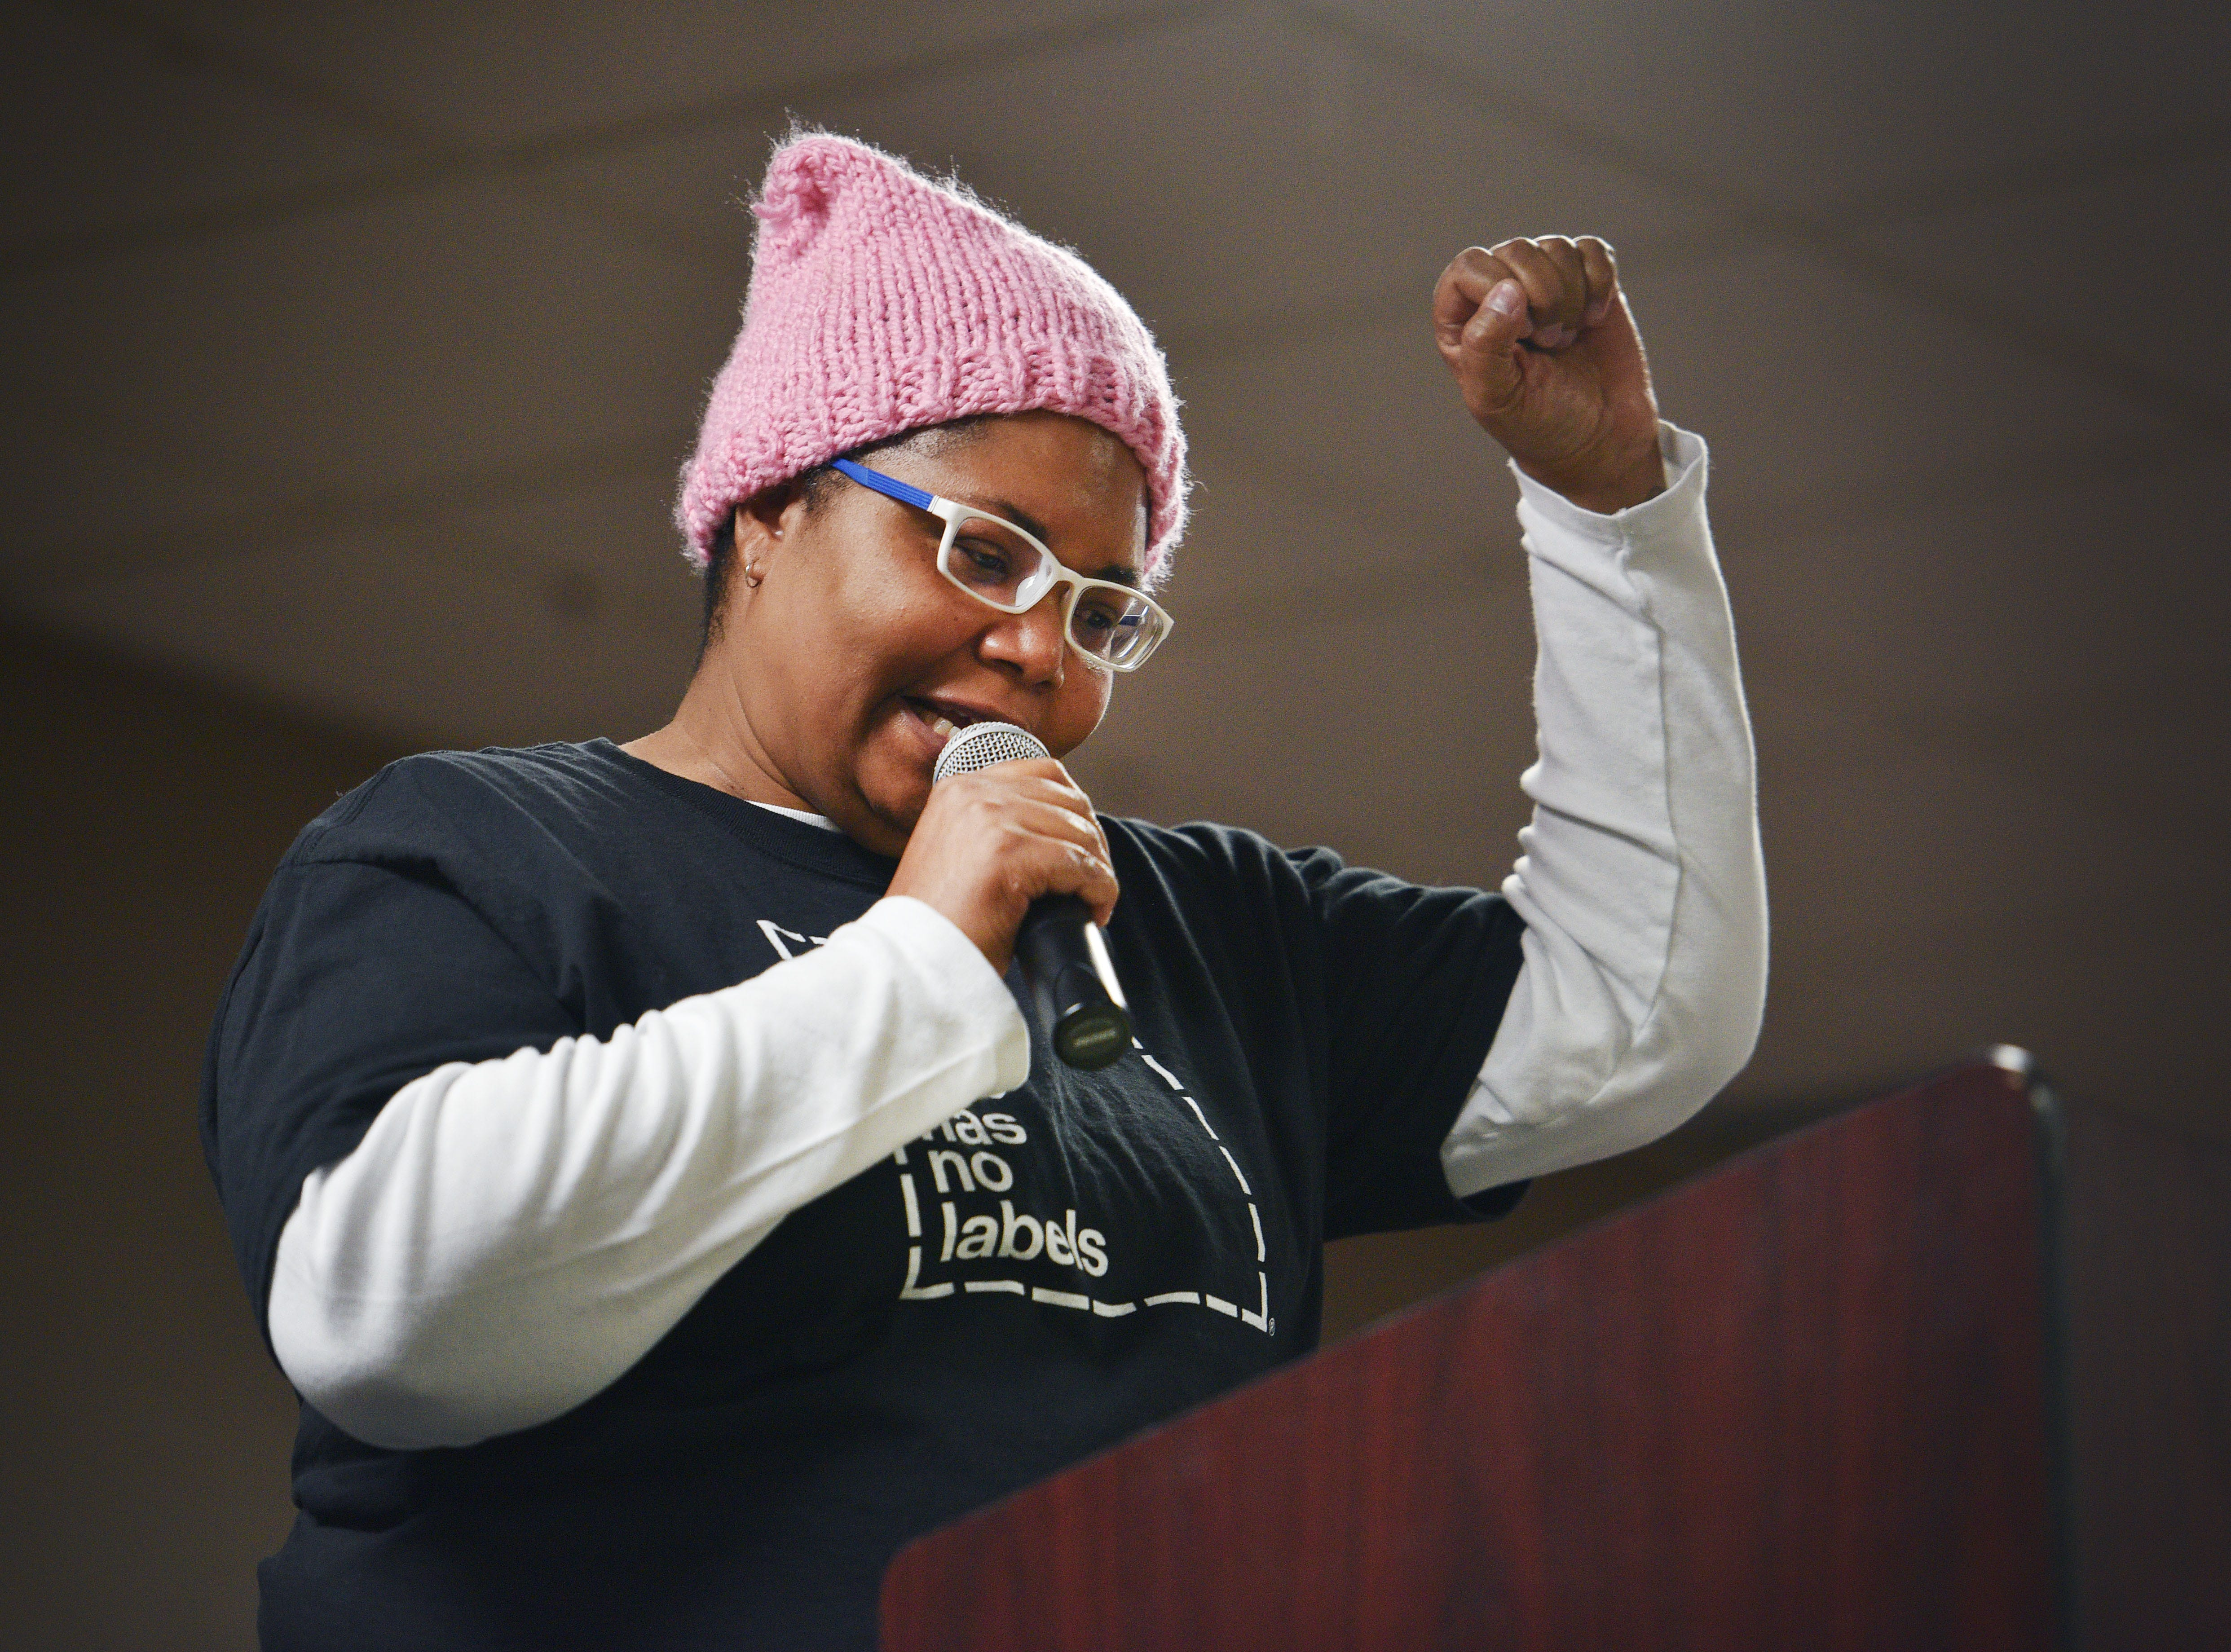 Denise Tucker speaks during the Women's March Saturday, Jan. 19, at the Downtown Sioux Falls Holiday Inn-City Centre in Sioux Falls.